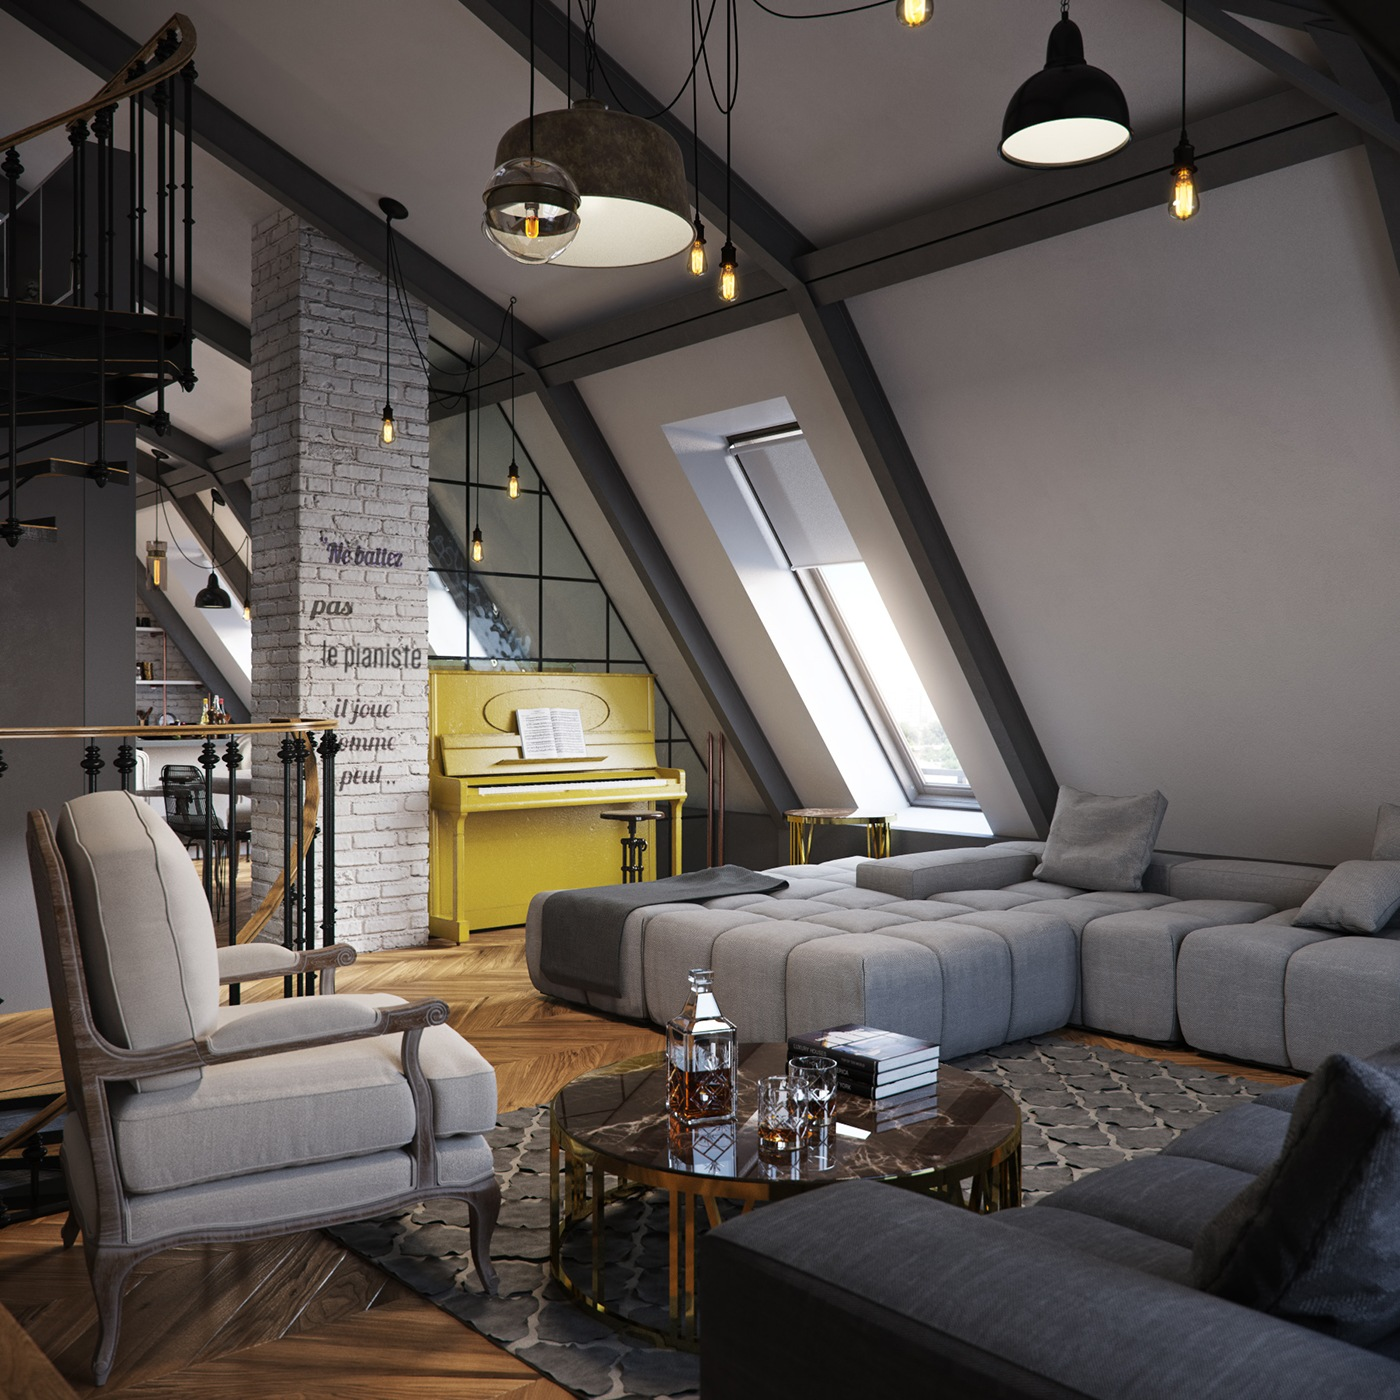 Medium Attic Living Room Design Designer PROforma